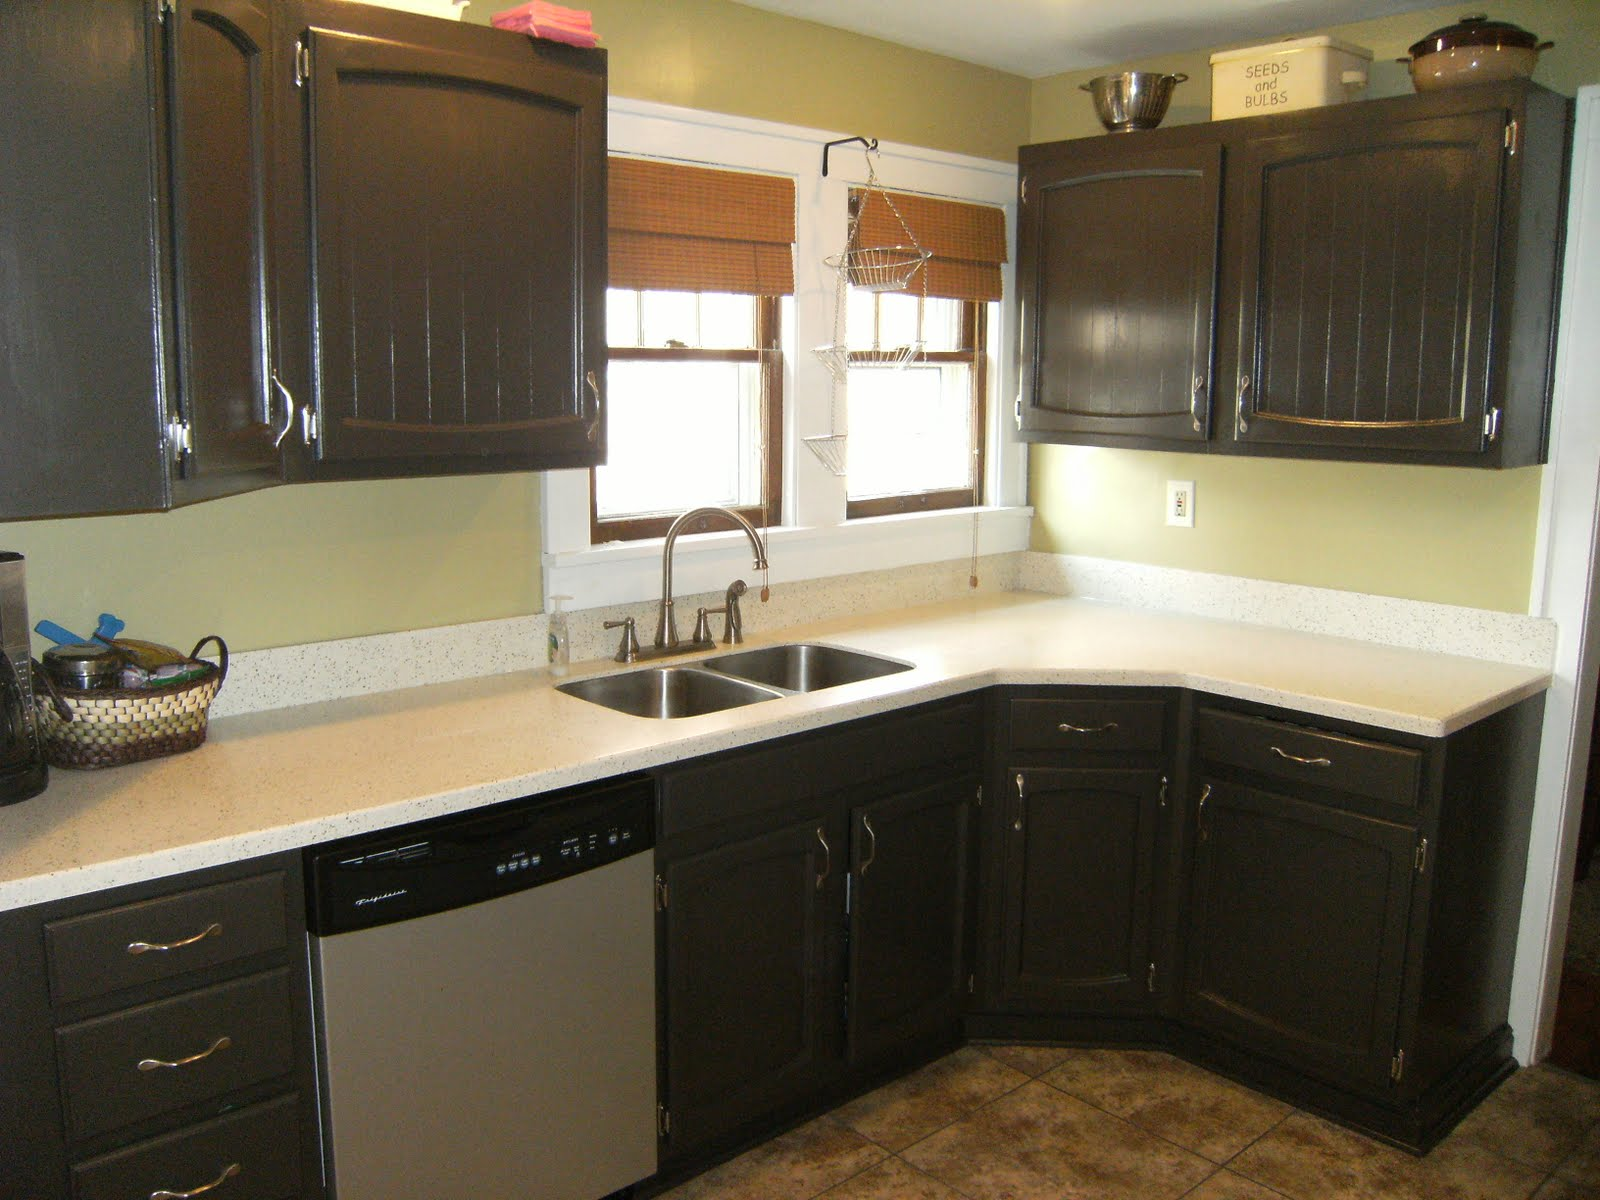 Matching Painting Kitchen Cabinets Decoration (View 4 of 10)